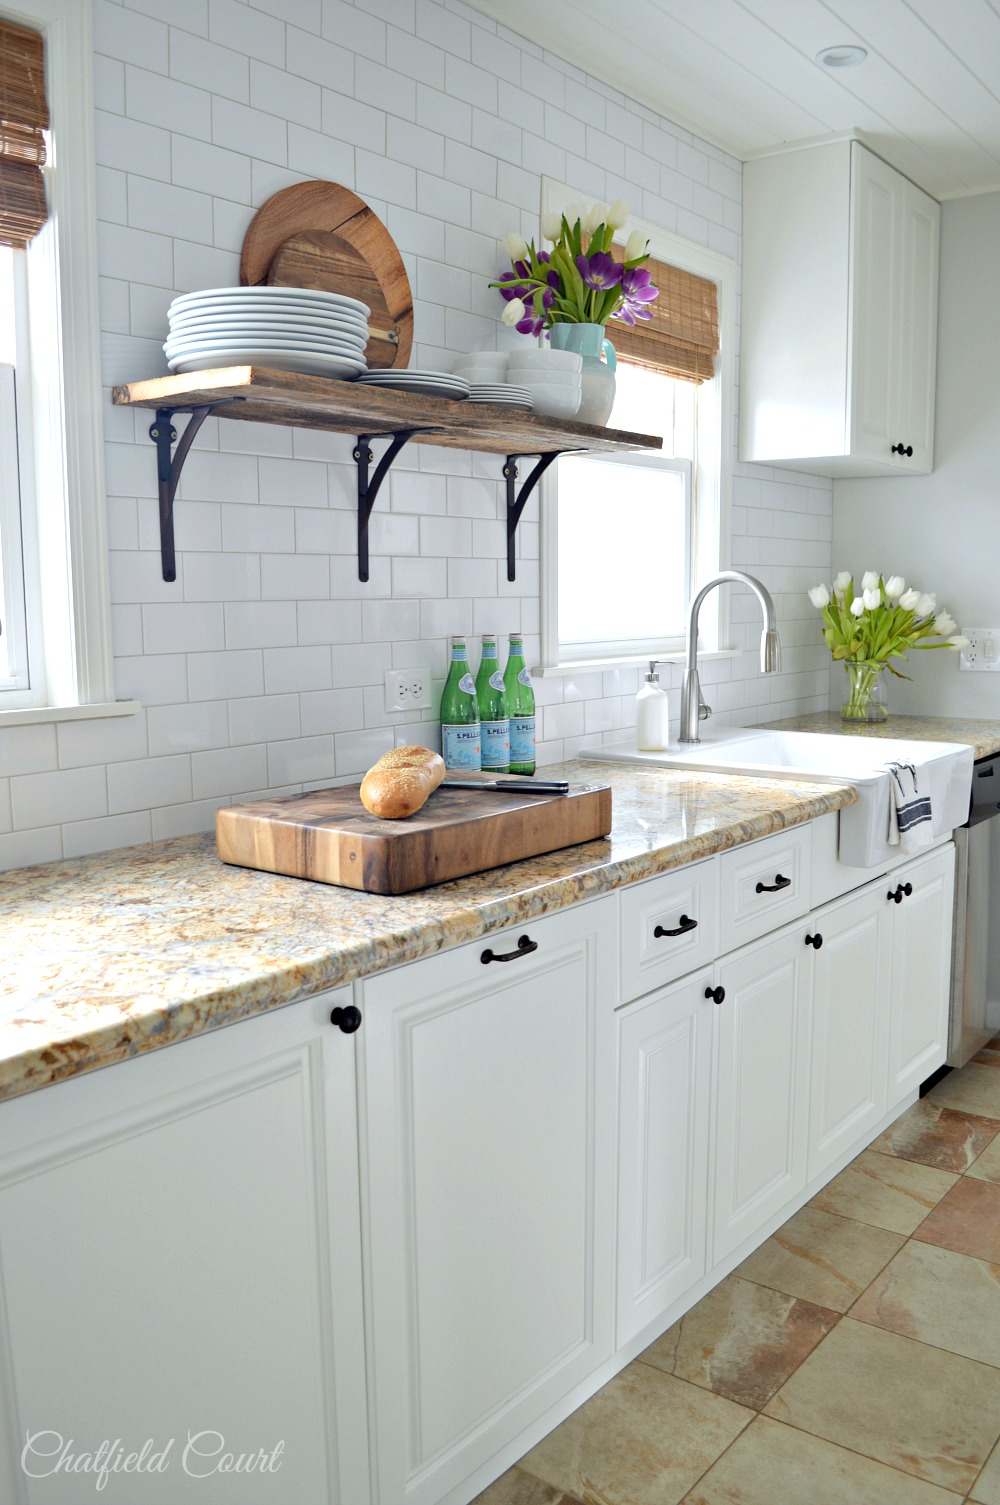 The Benefits Of Open Shelving In The Kitchen: 9 Fixer Upper Style Shelves